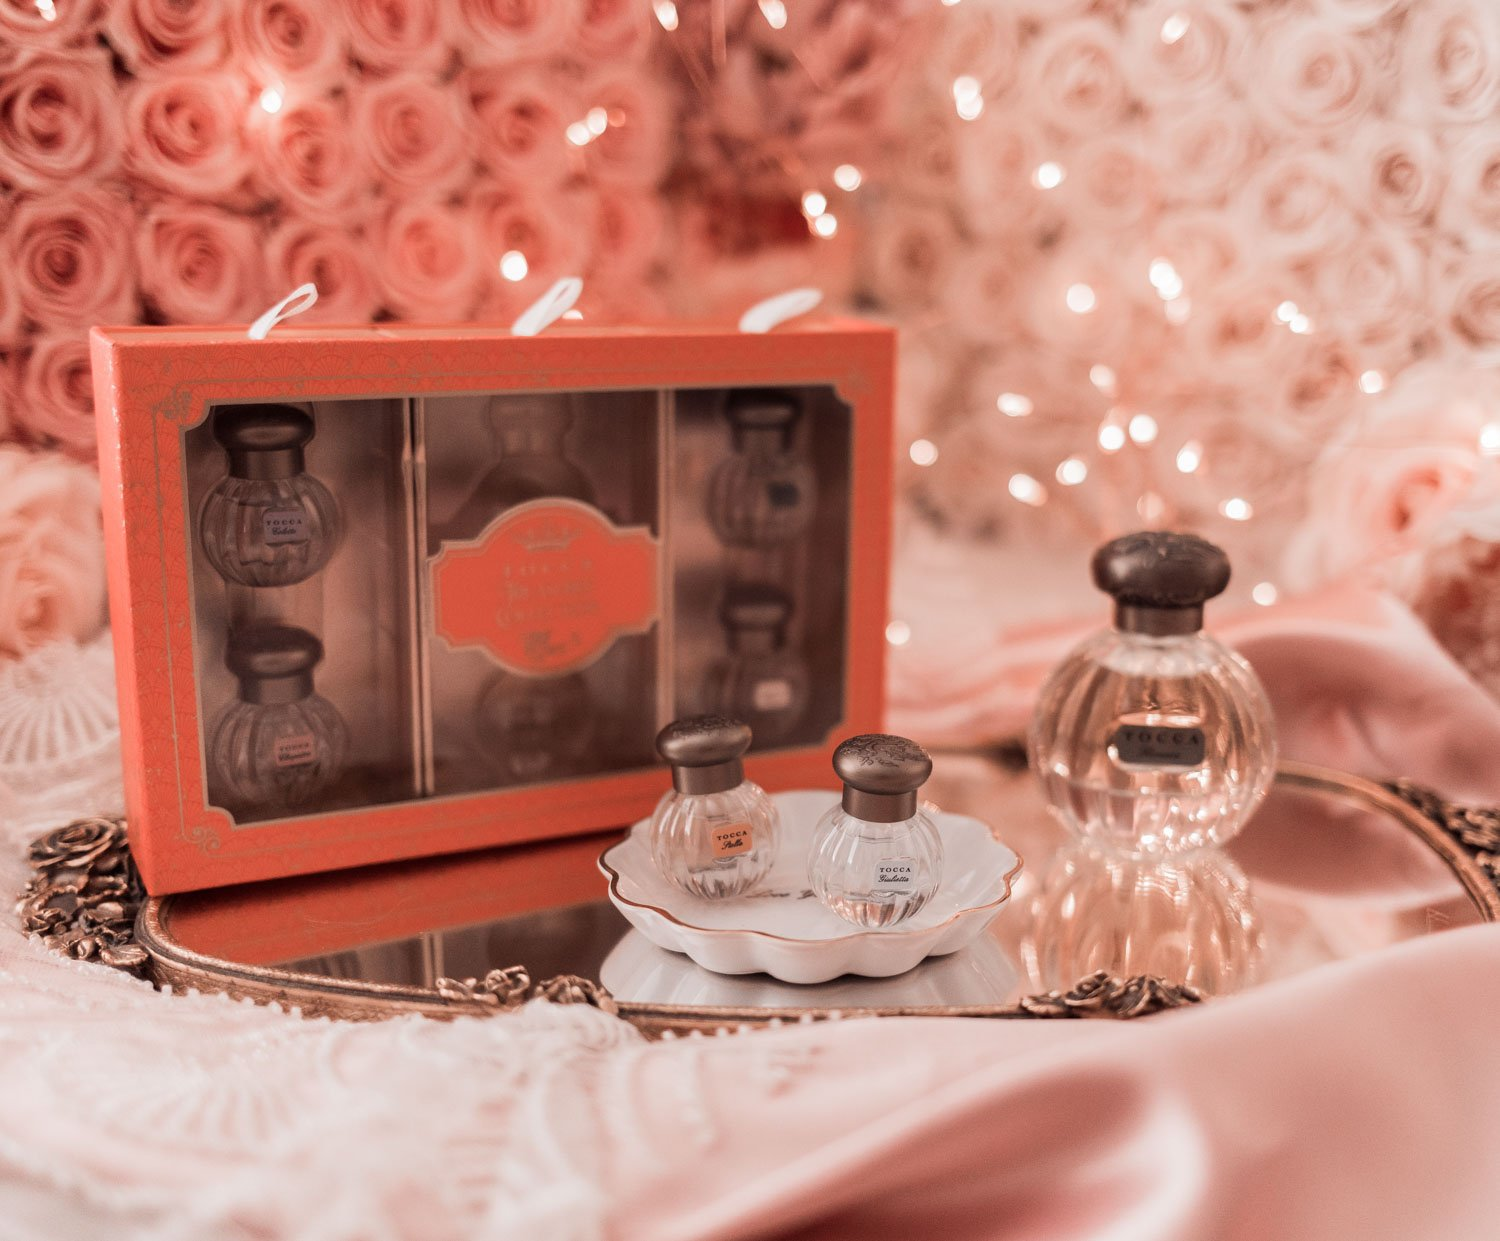 Fashion Blogger Elizabeth Hugen shares her Girly Girl Holiday Gift Guide including this Tocca sample set